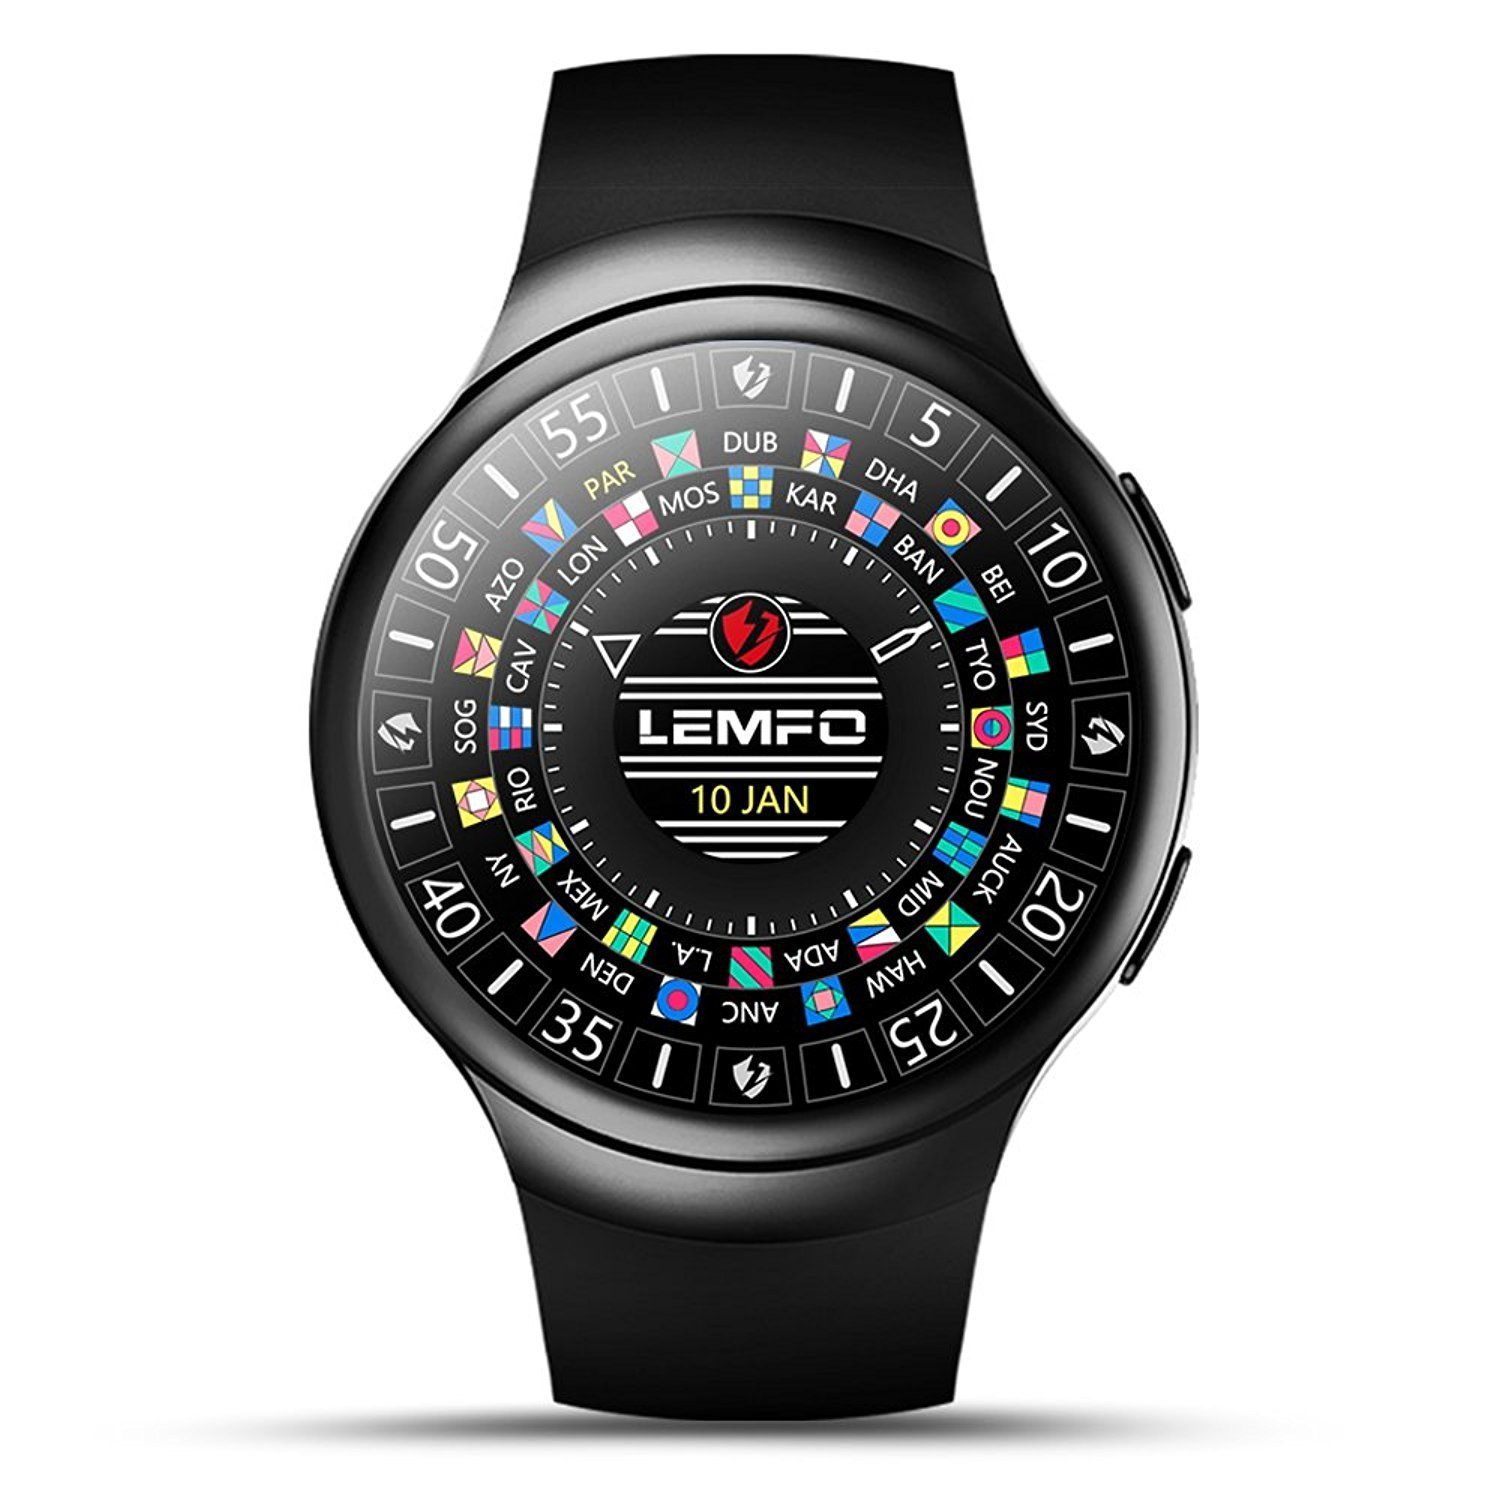 Amazon.com: LEMFO Android 5.1OS 3G Smart Watch Phone WiFi BT ...